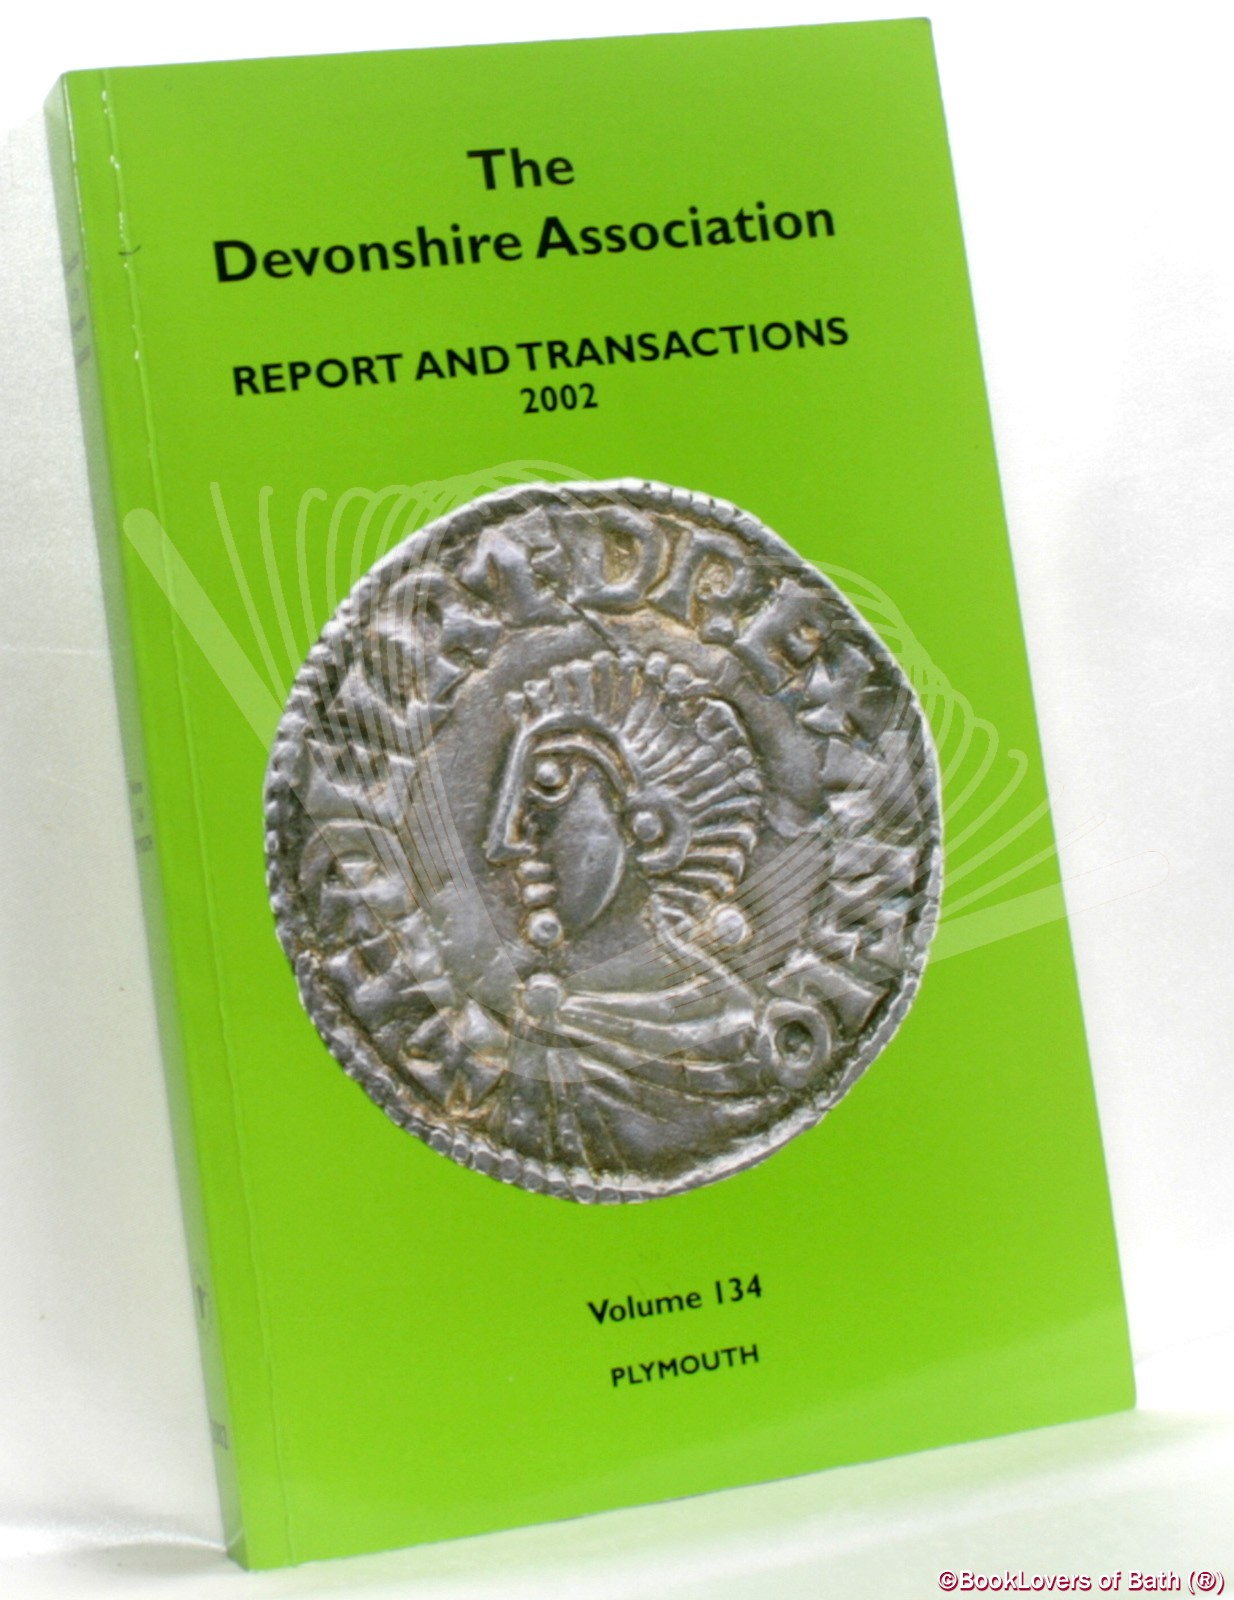 The Devonshire Association for the Advancement of Science, Literature and Art: Reports & Transactions Volume 134 Plymouth 2002 - Anon.